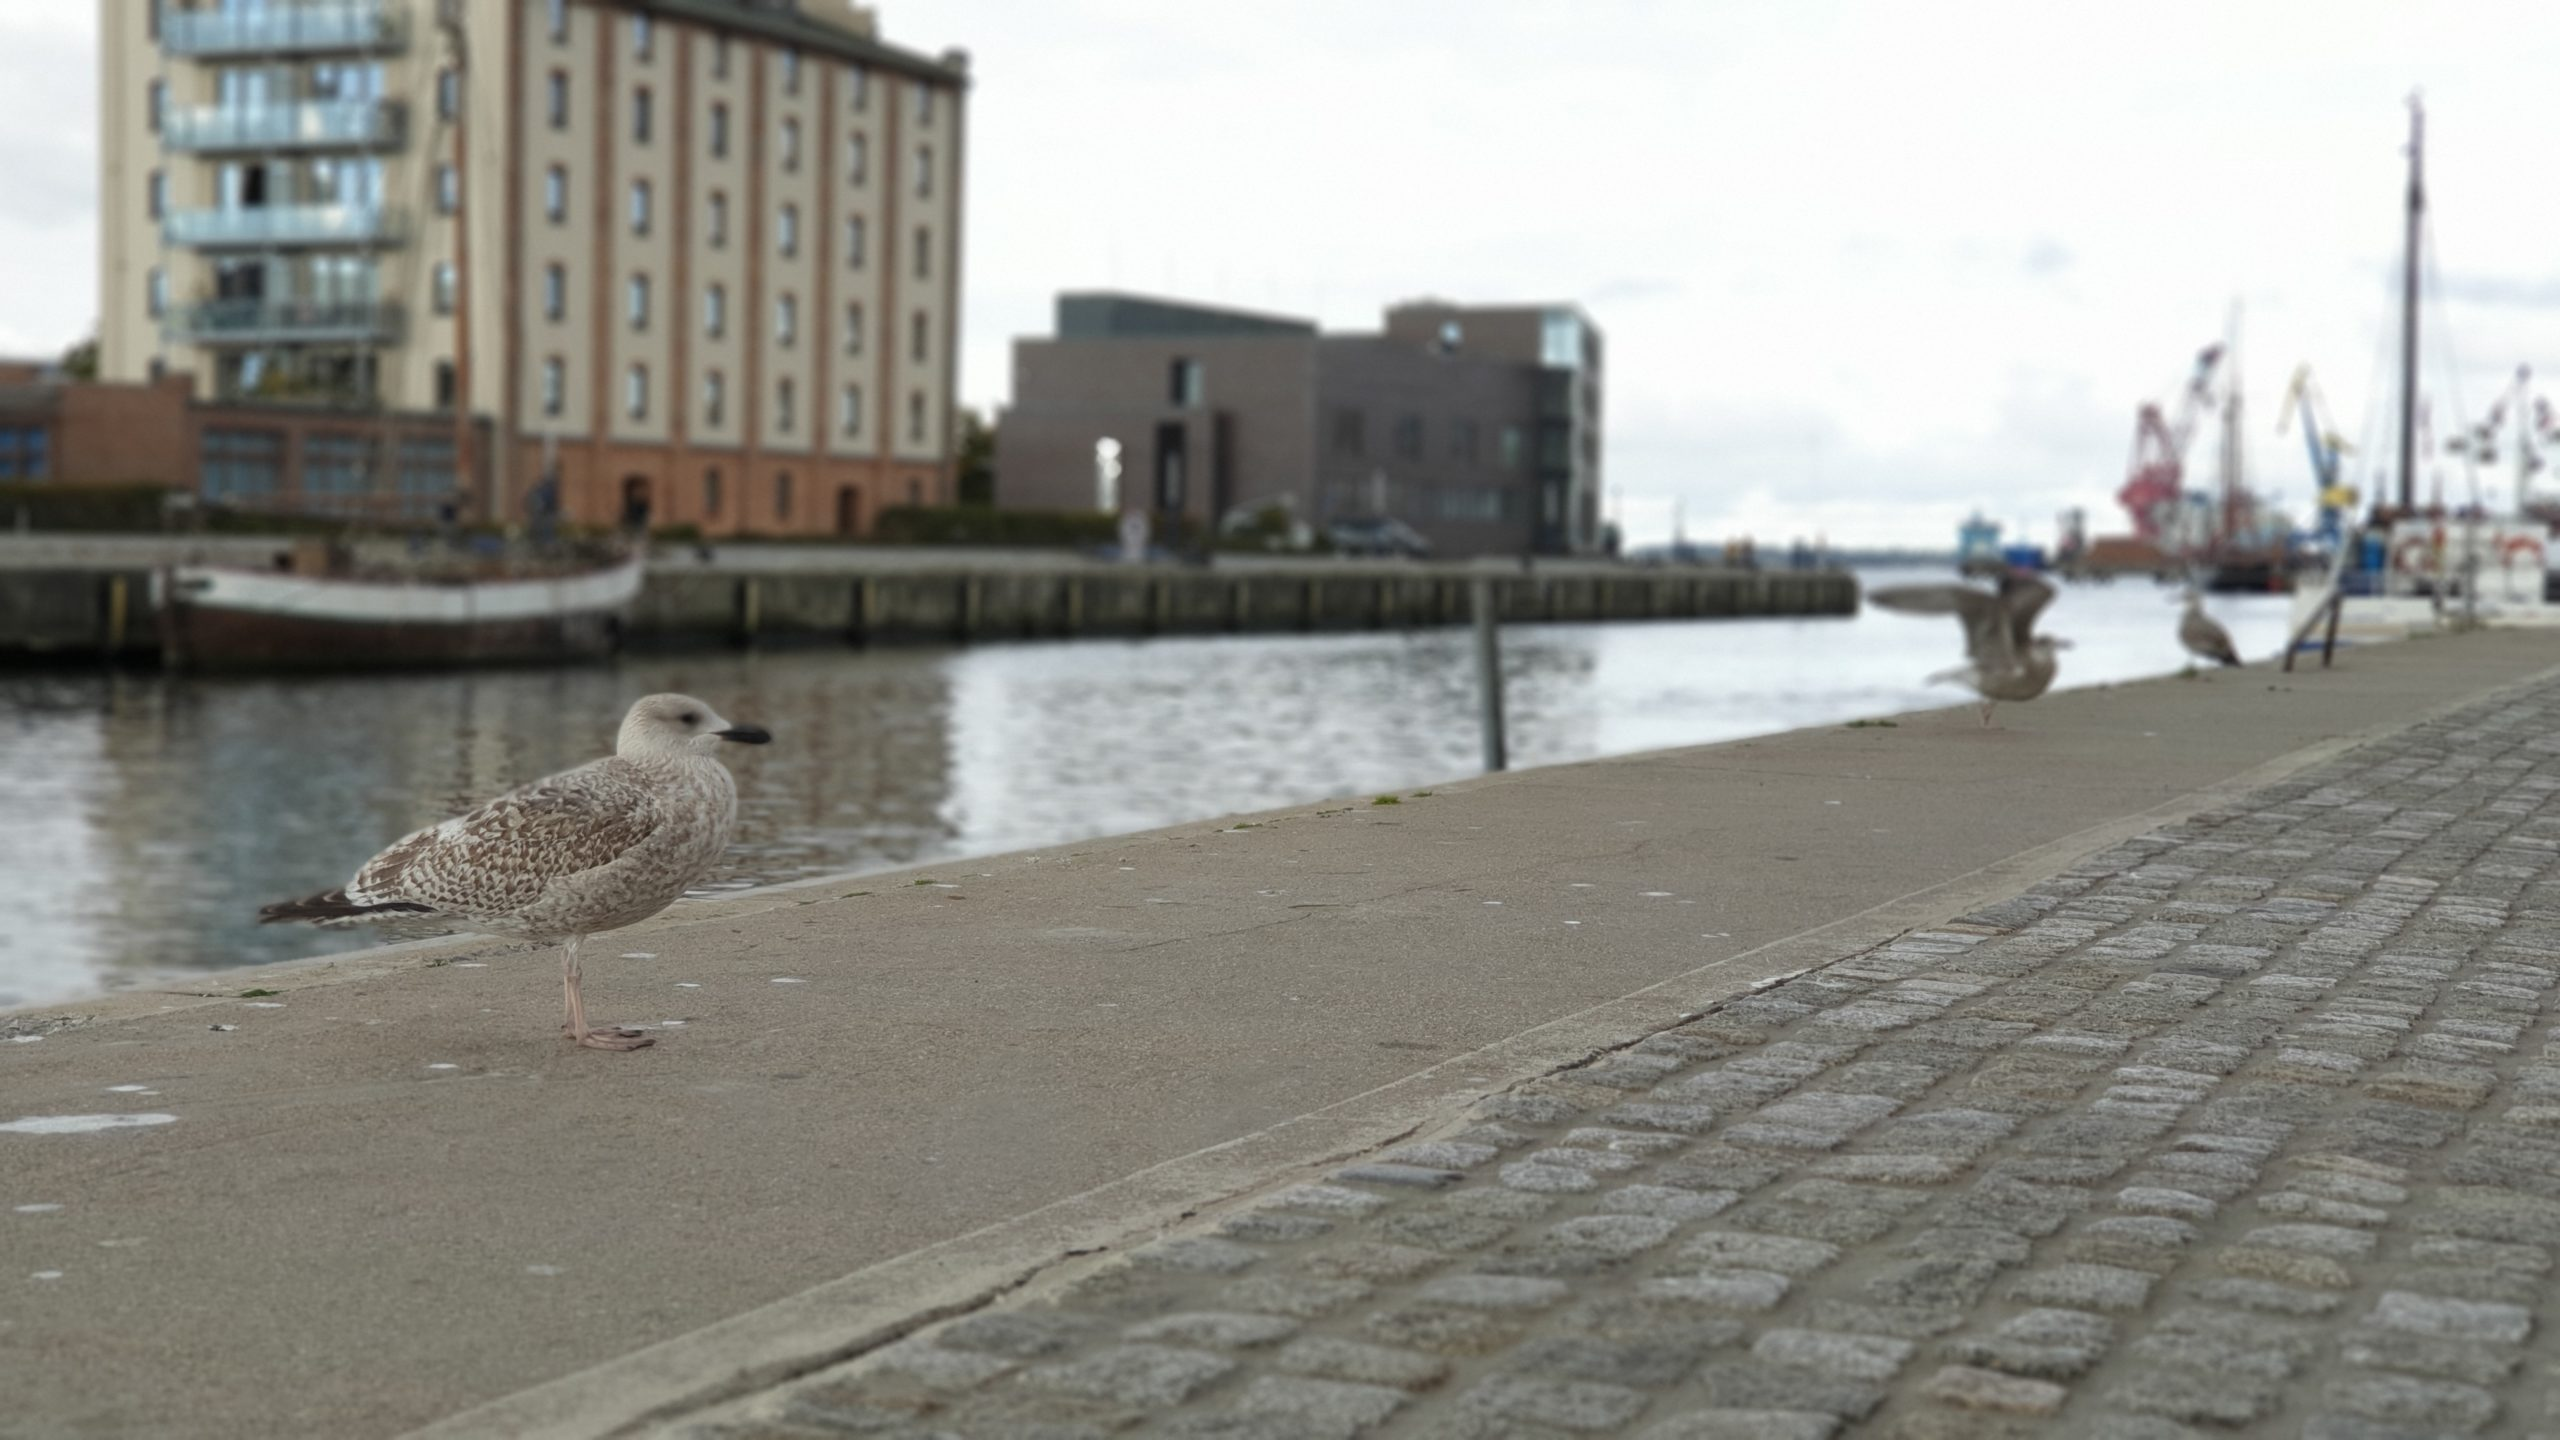 Big Seagull chick in Wismar, Germany